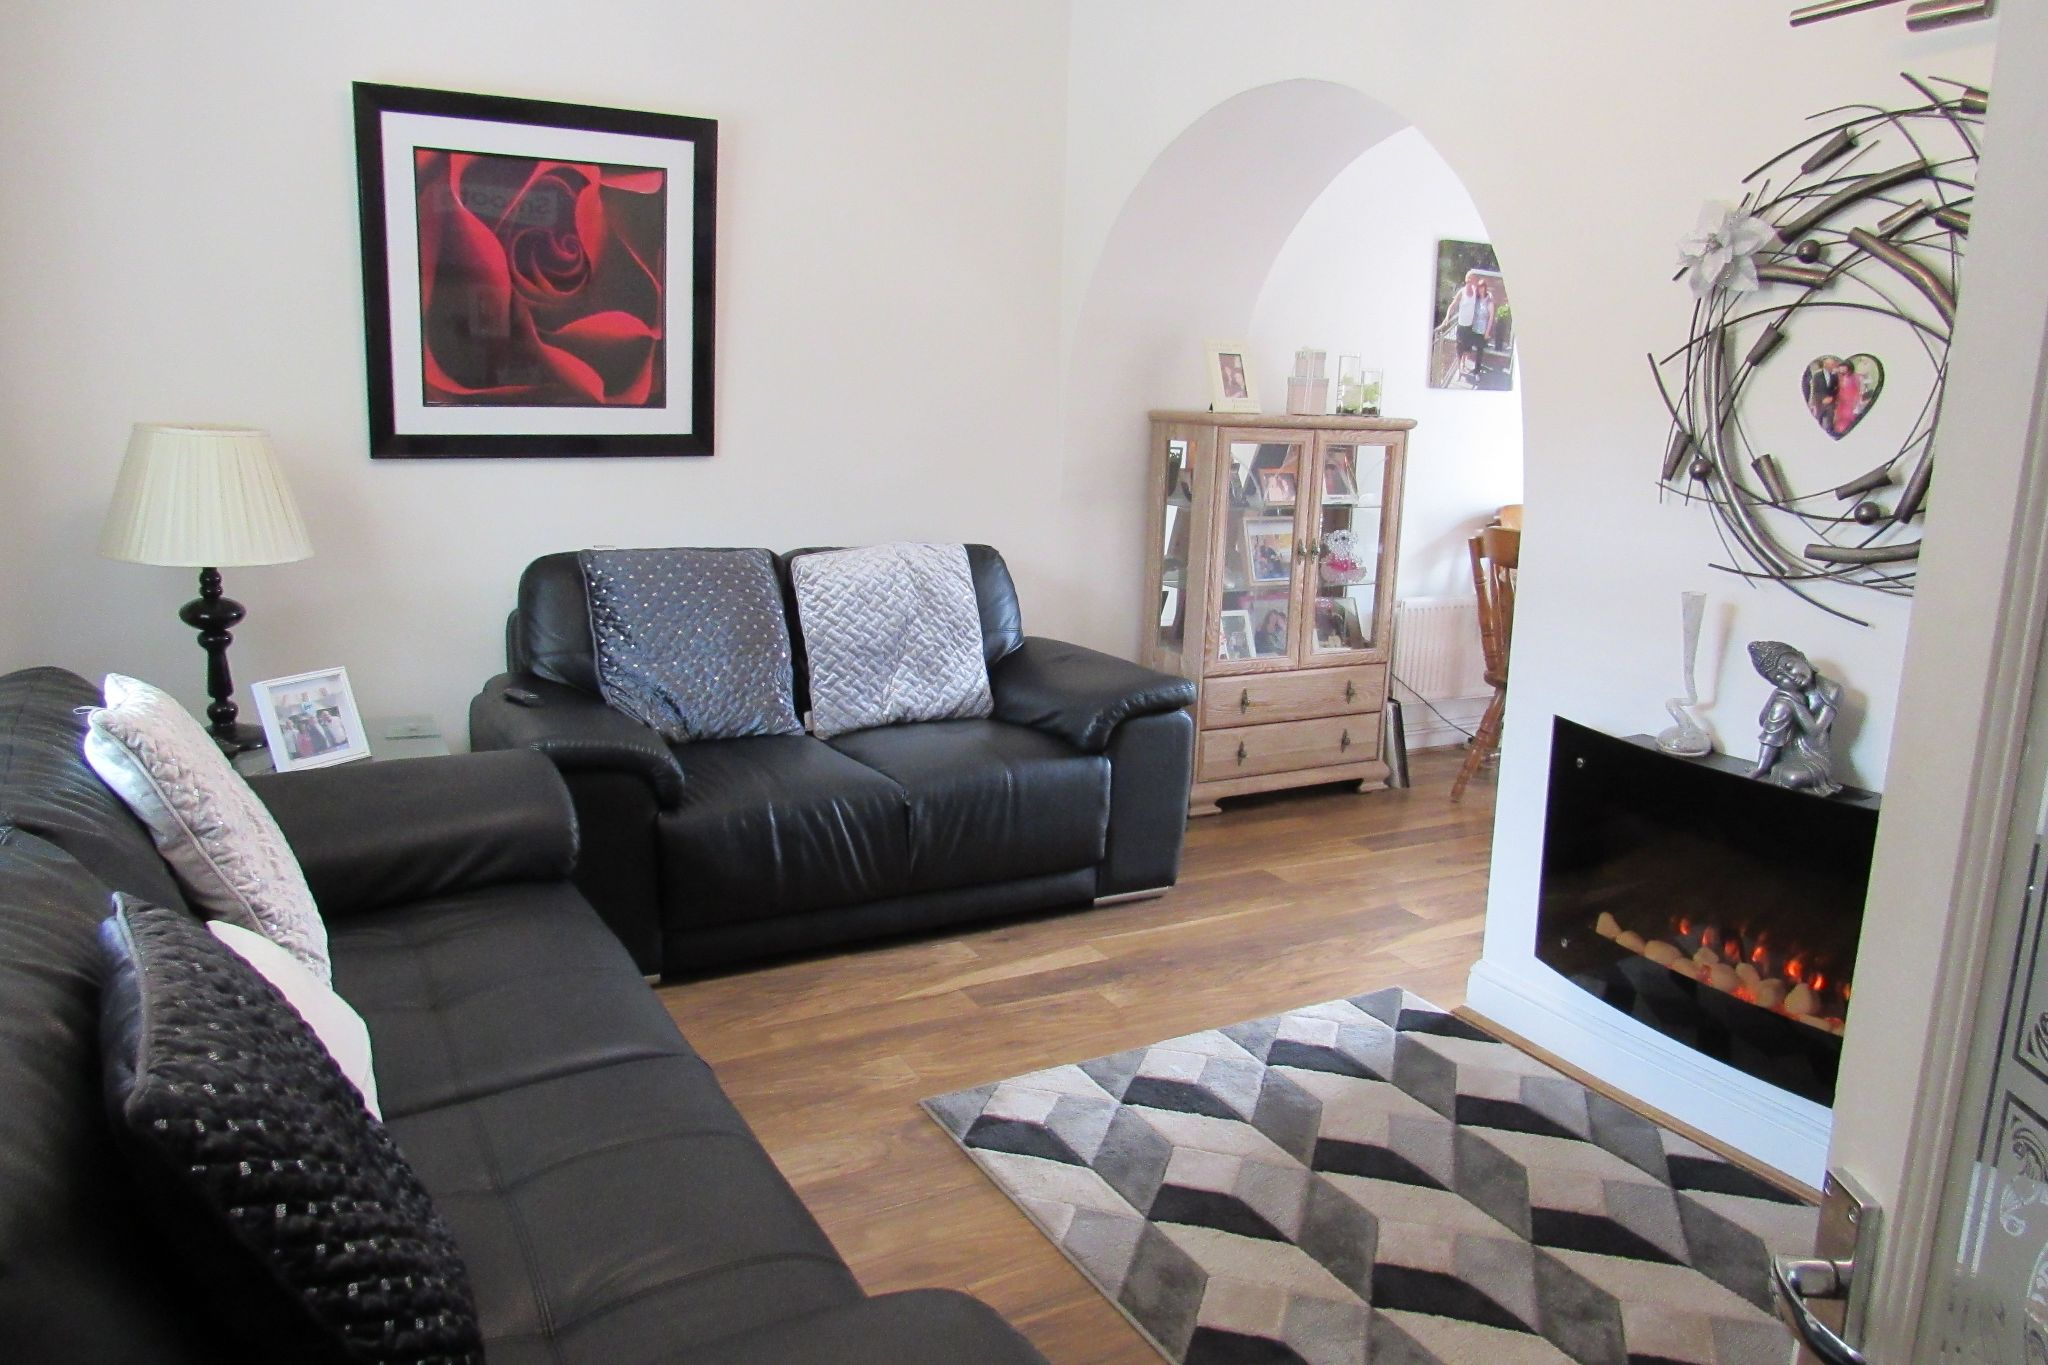 3 bedroom mid terraced house SSTC in Manchester - Photograph 1.